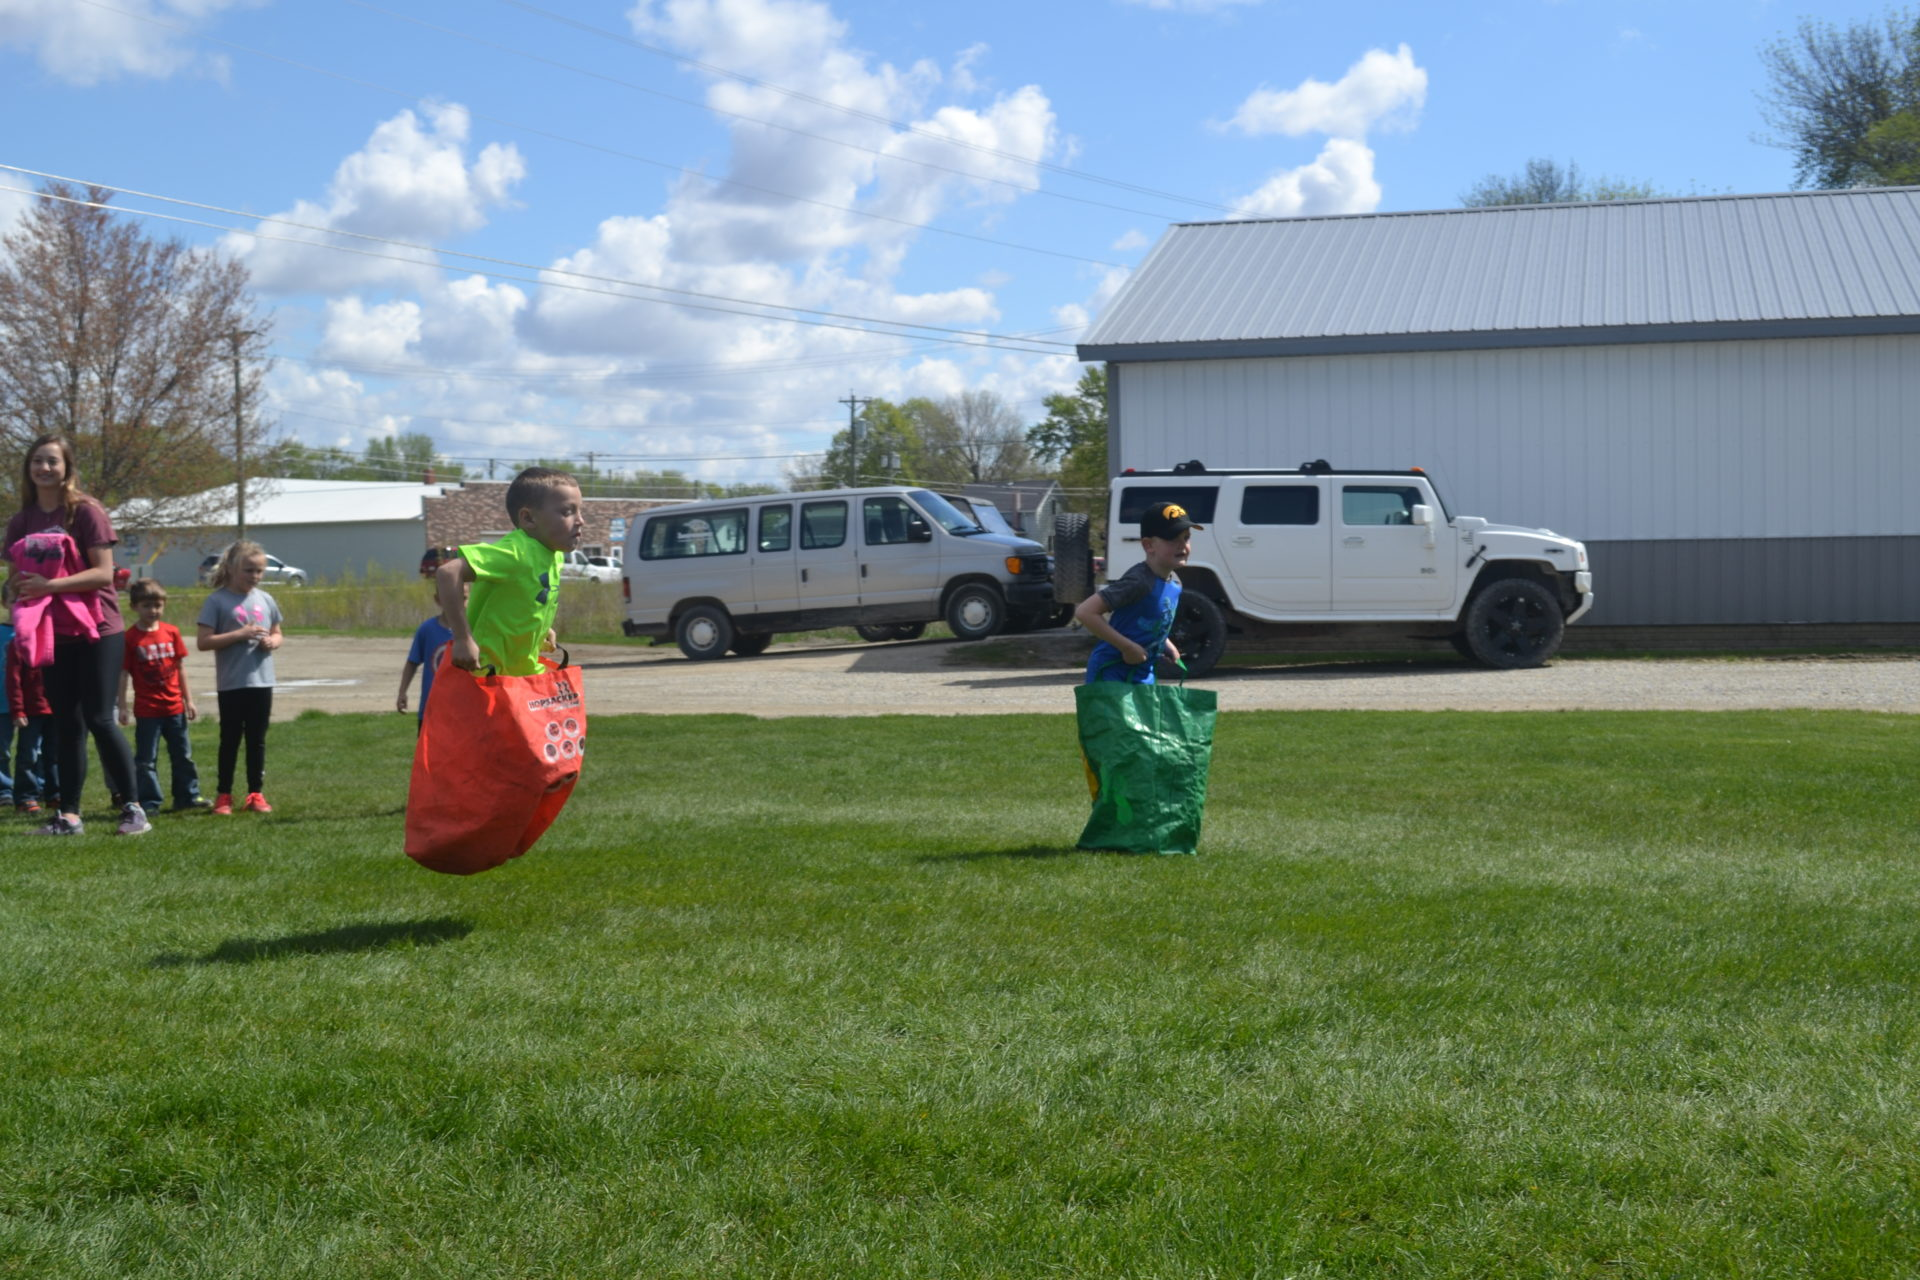 Students participate in the bean bag race during Field Day